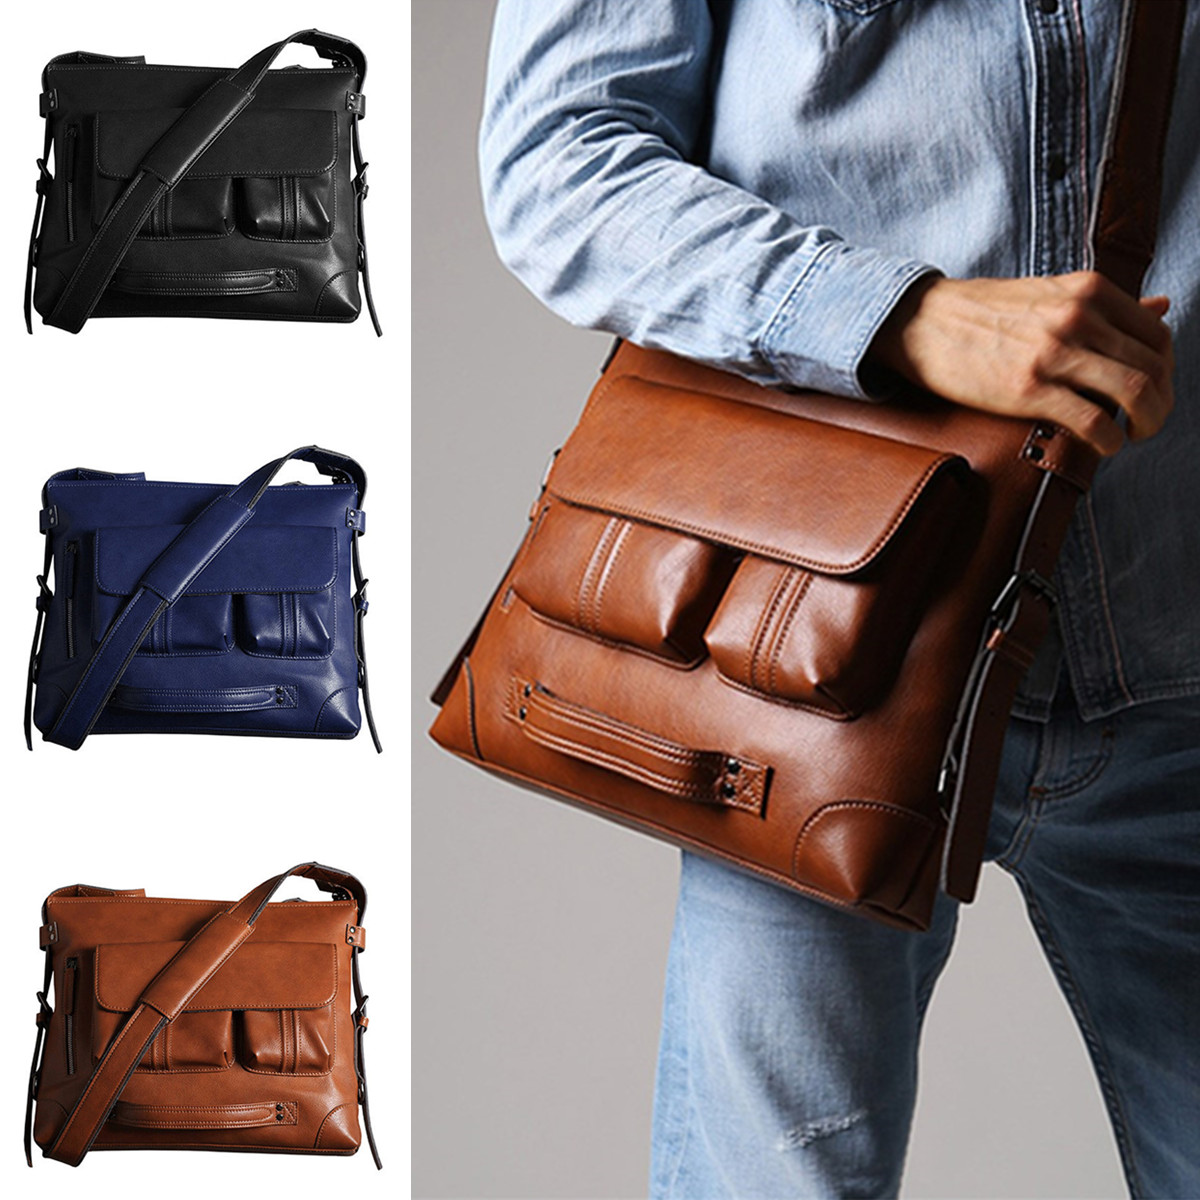 New Men's Briefcase Bags For Laptop Man Business Bag 2Pcs Set Backpack Handbags High Quality Leather Office Shoulder Bags Tote